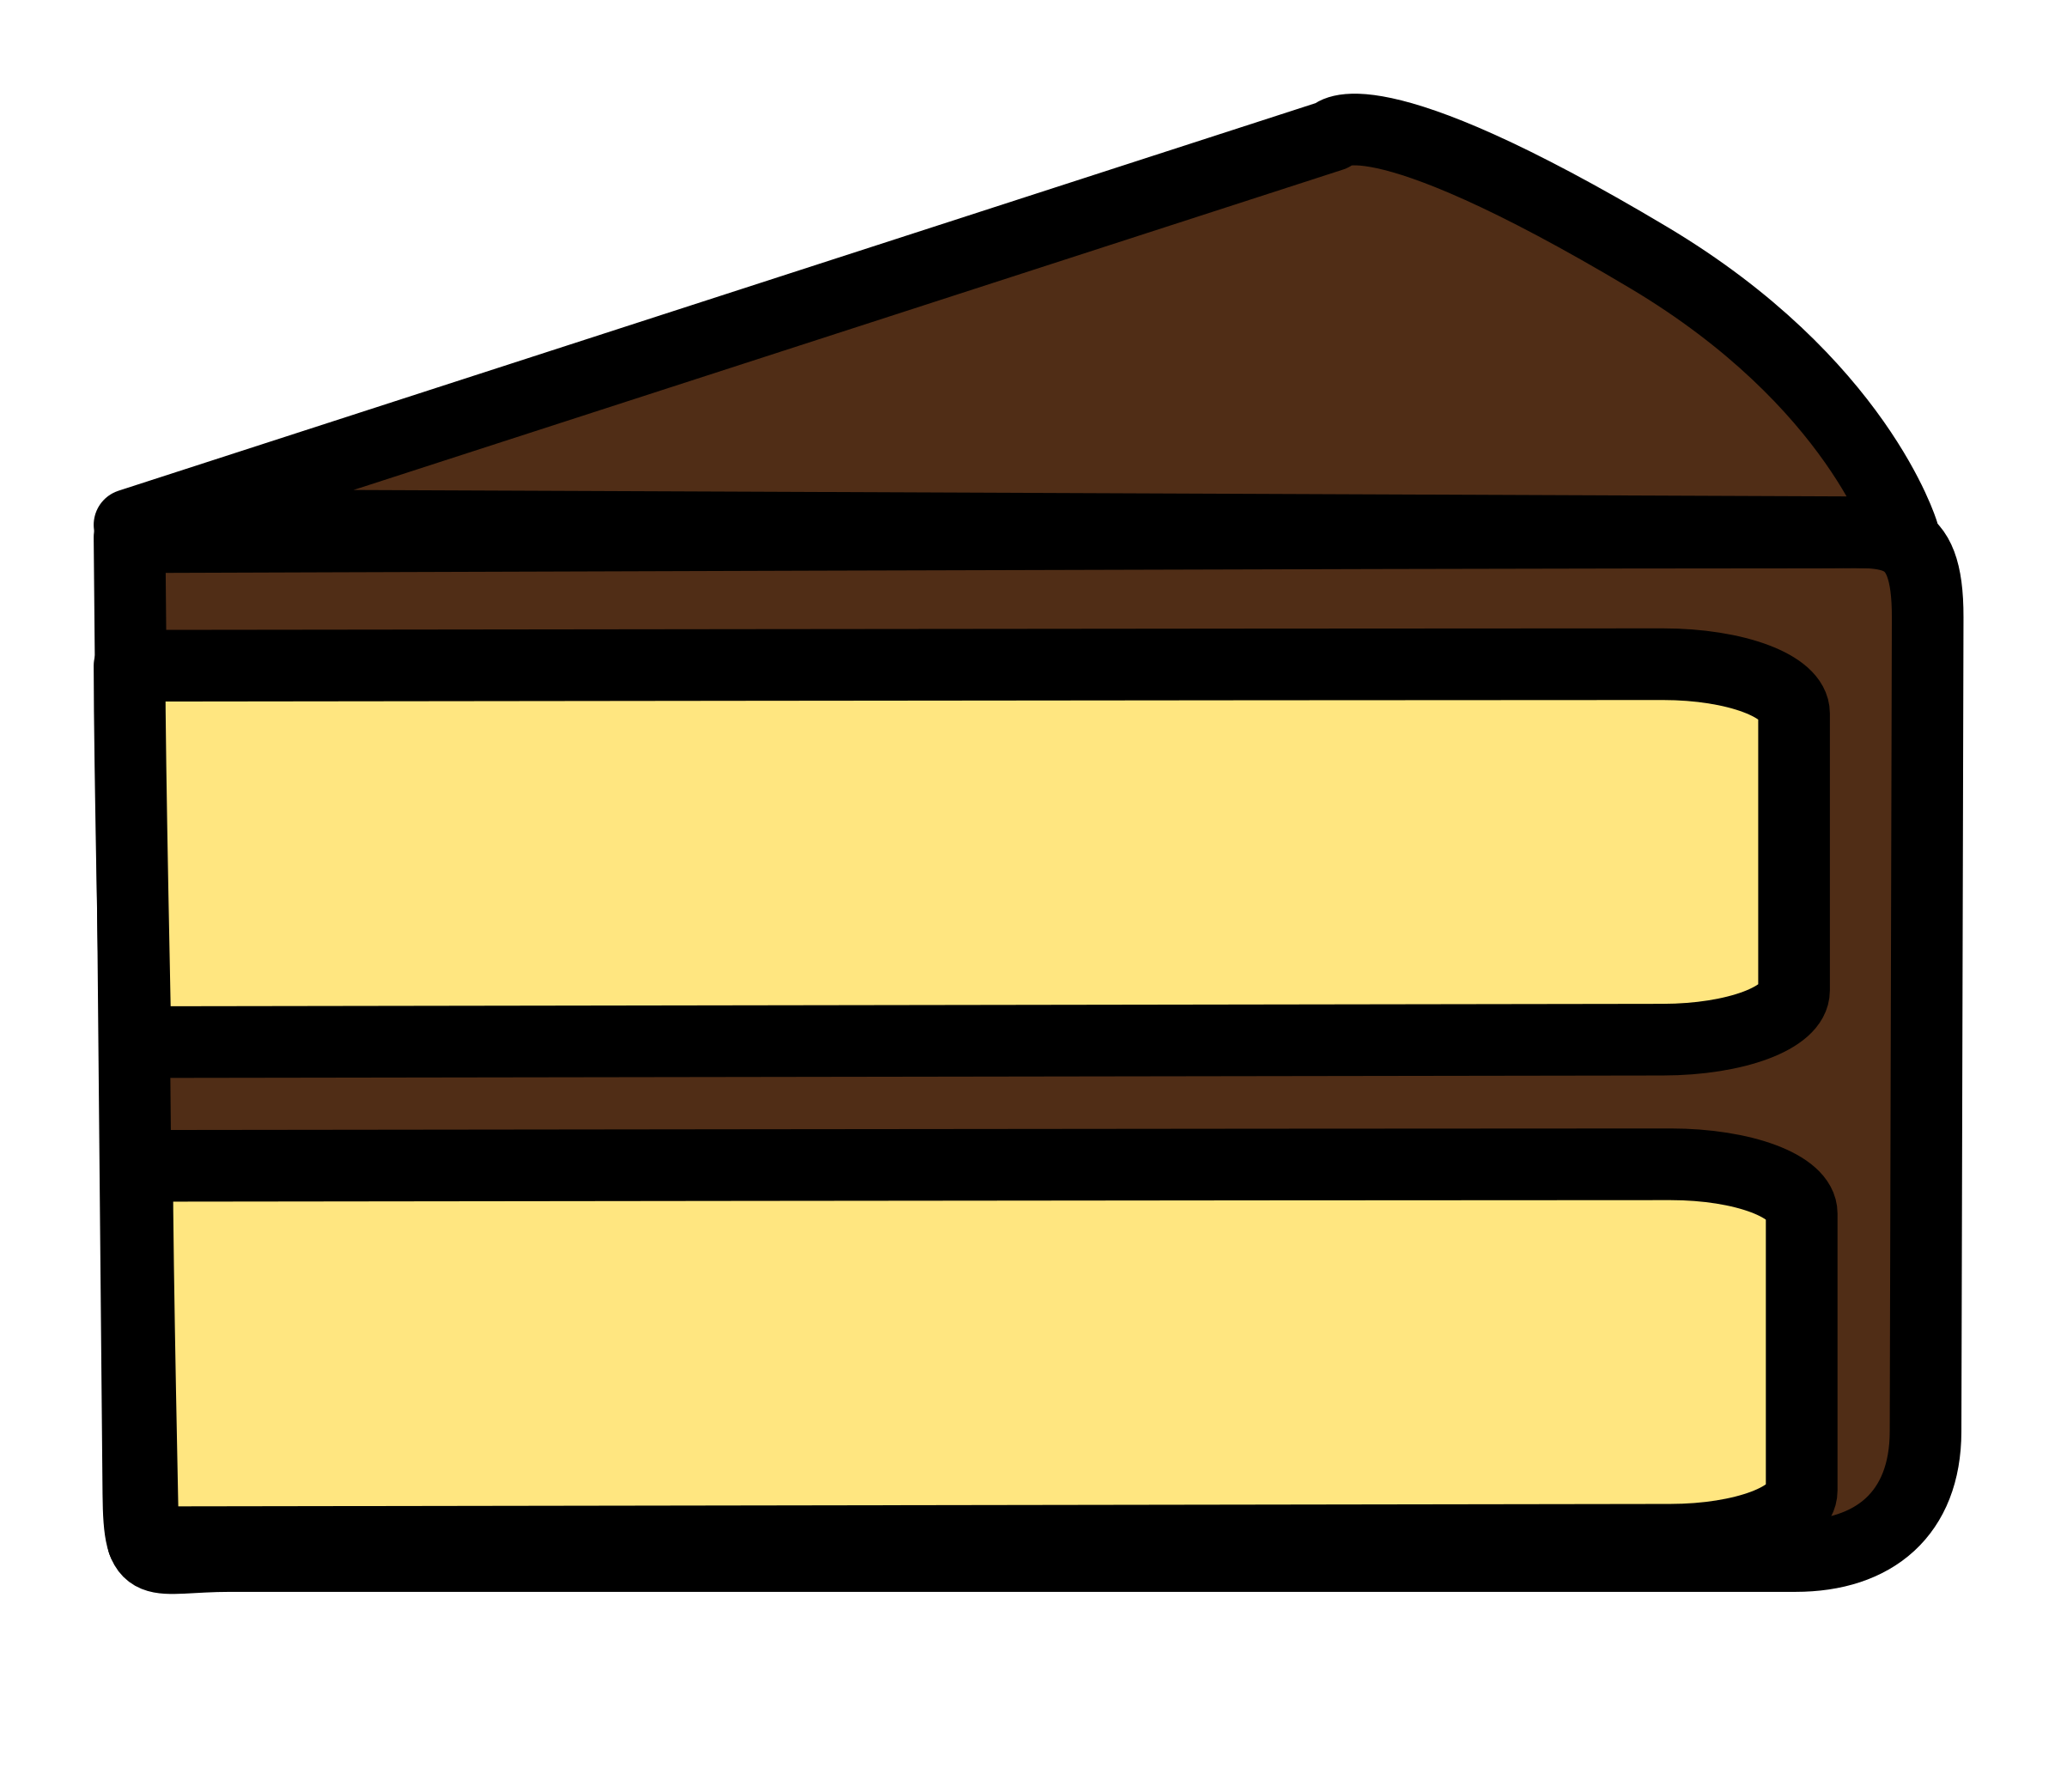 Clipart slice of cake